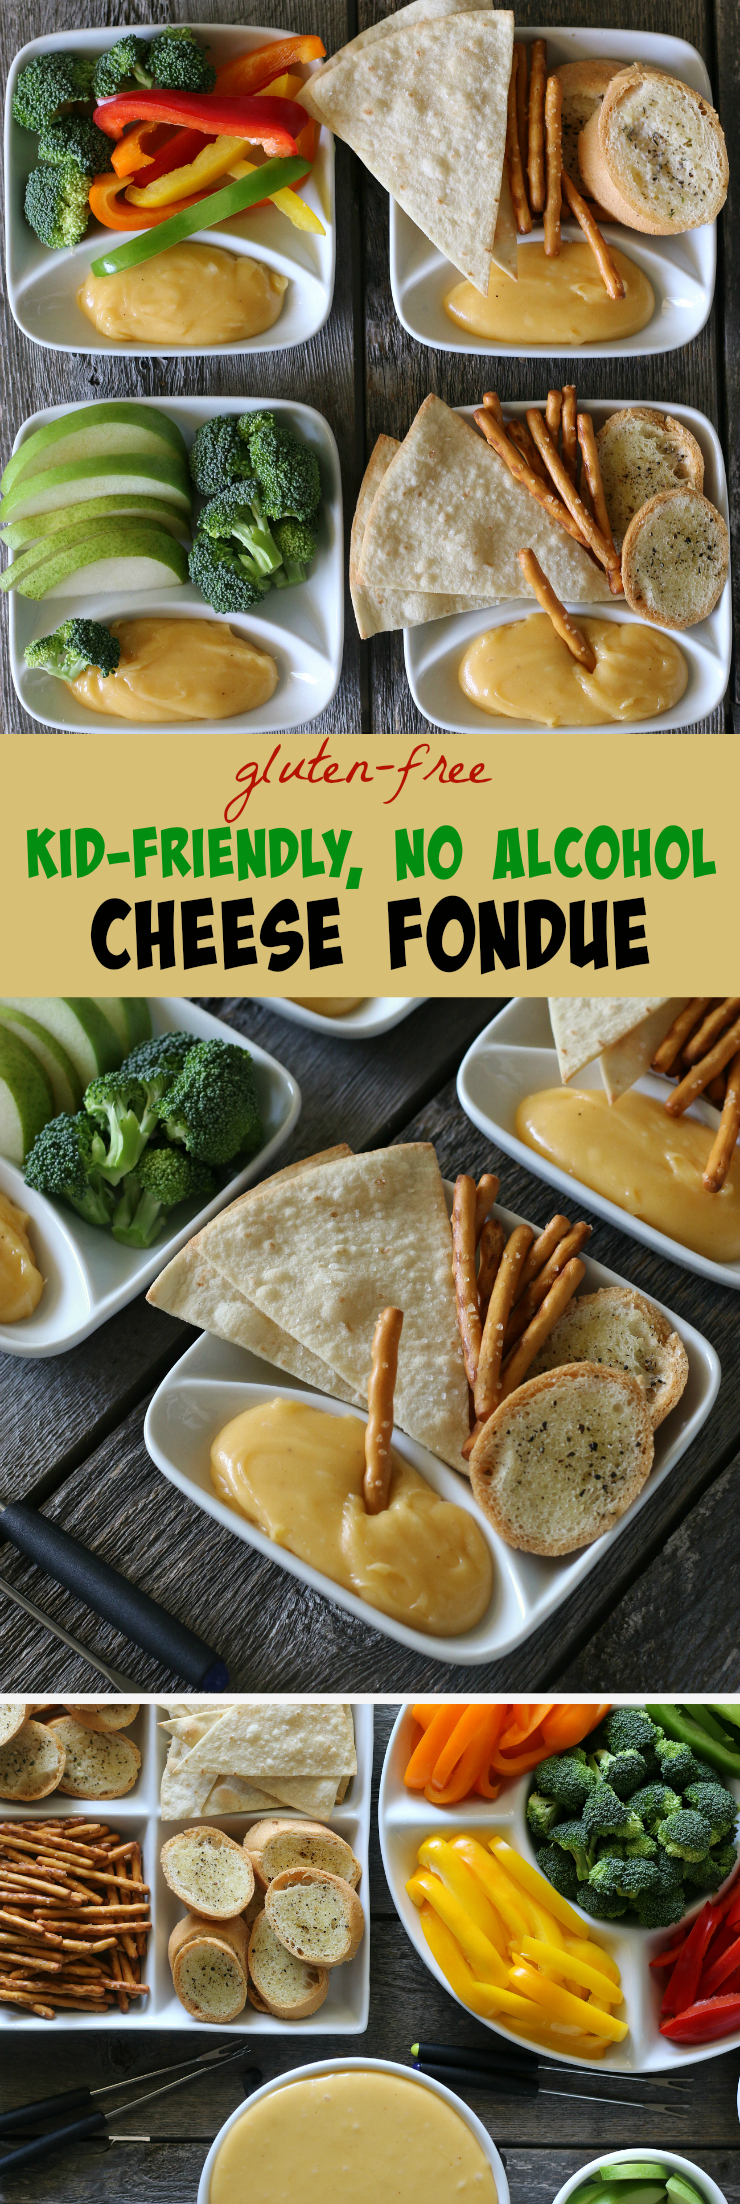 Gluten-free Kid-Friendly, No Alcohol Cheese Fondue